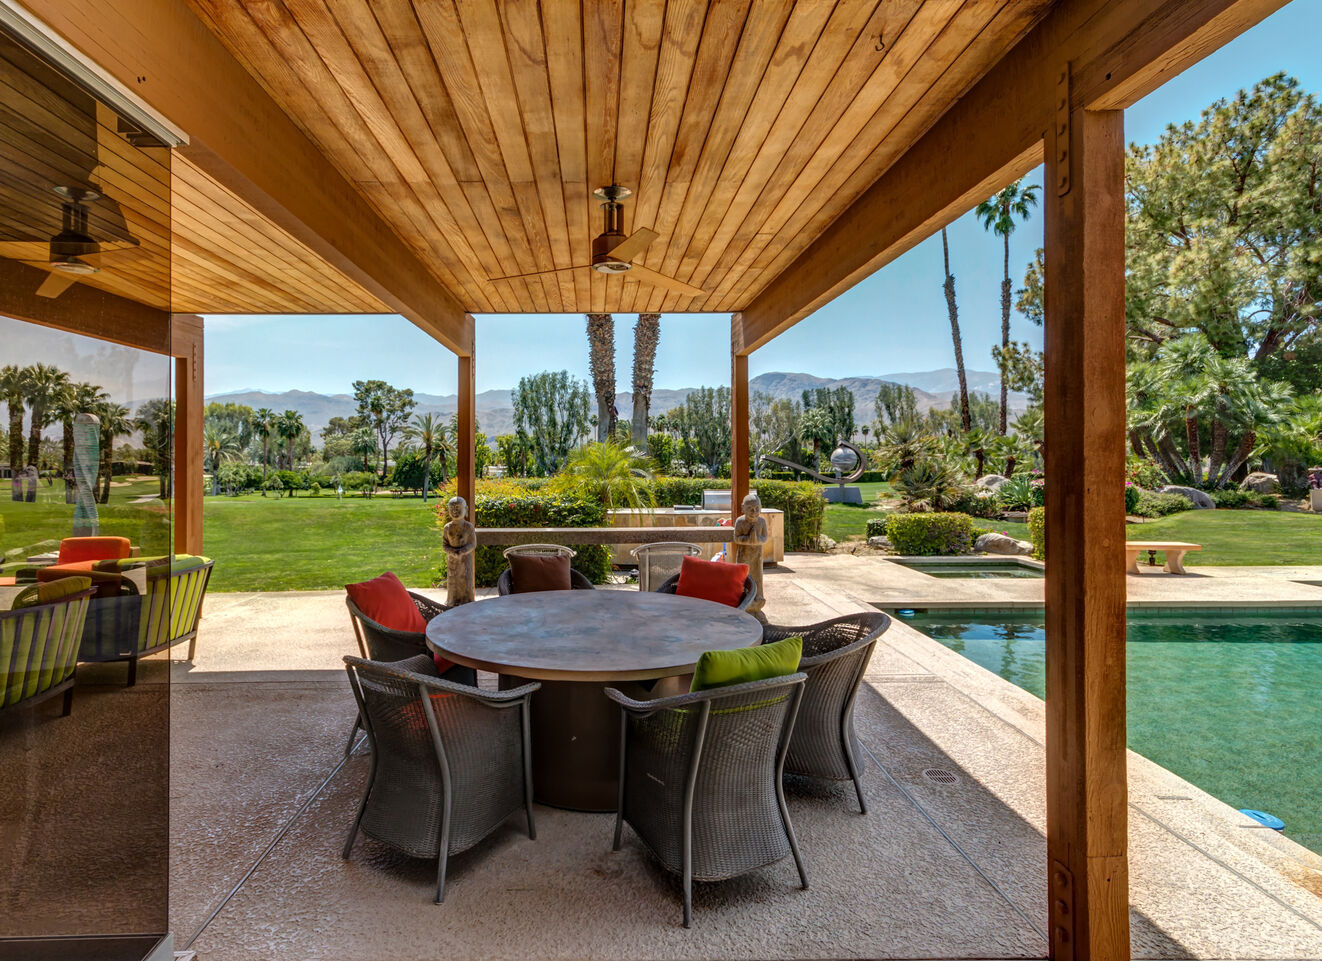 Outdoor Living Area & Grill